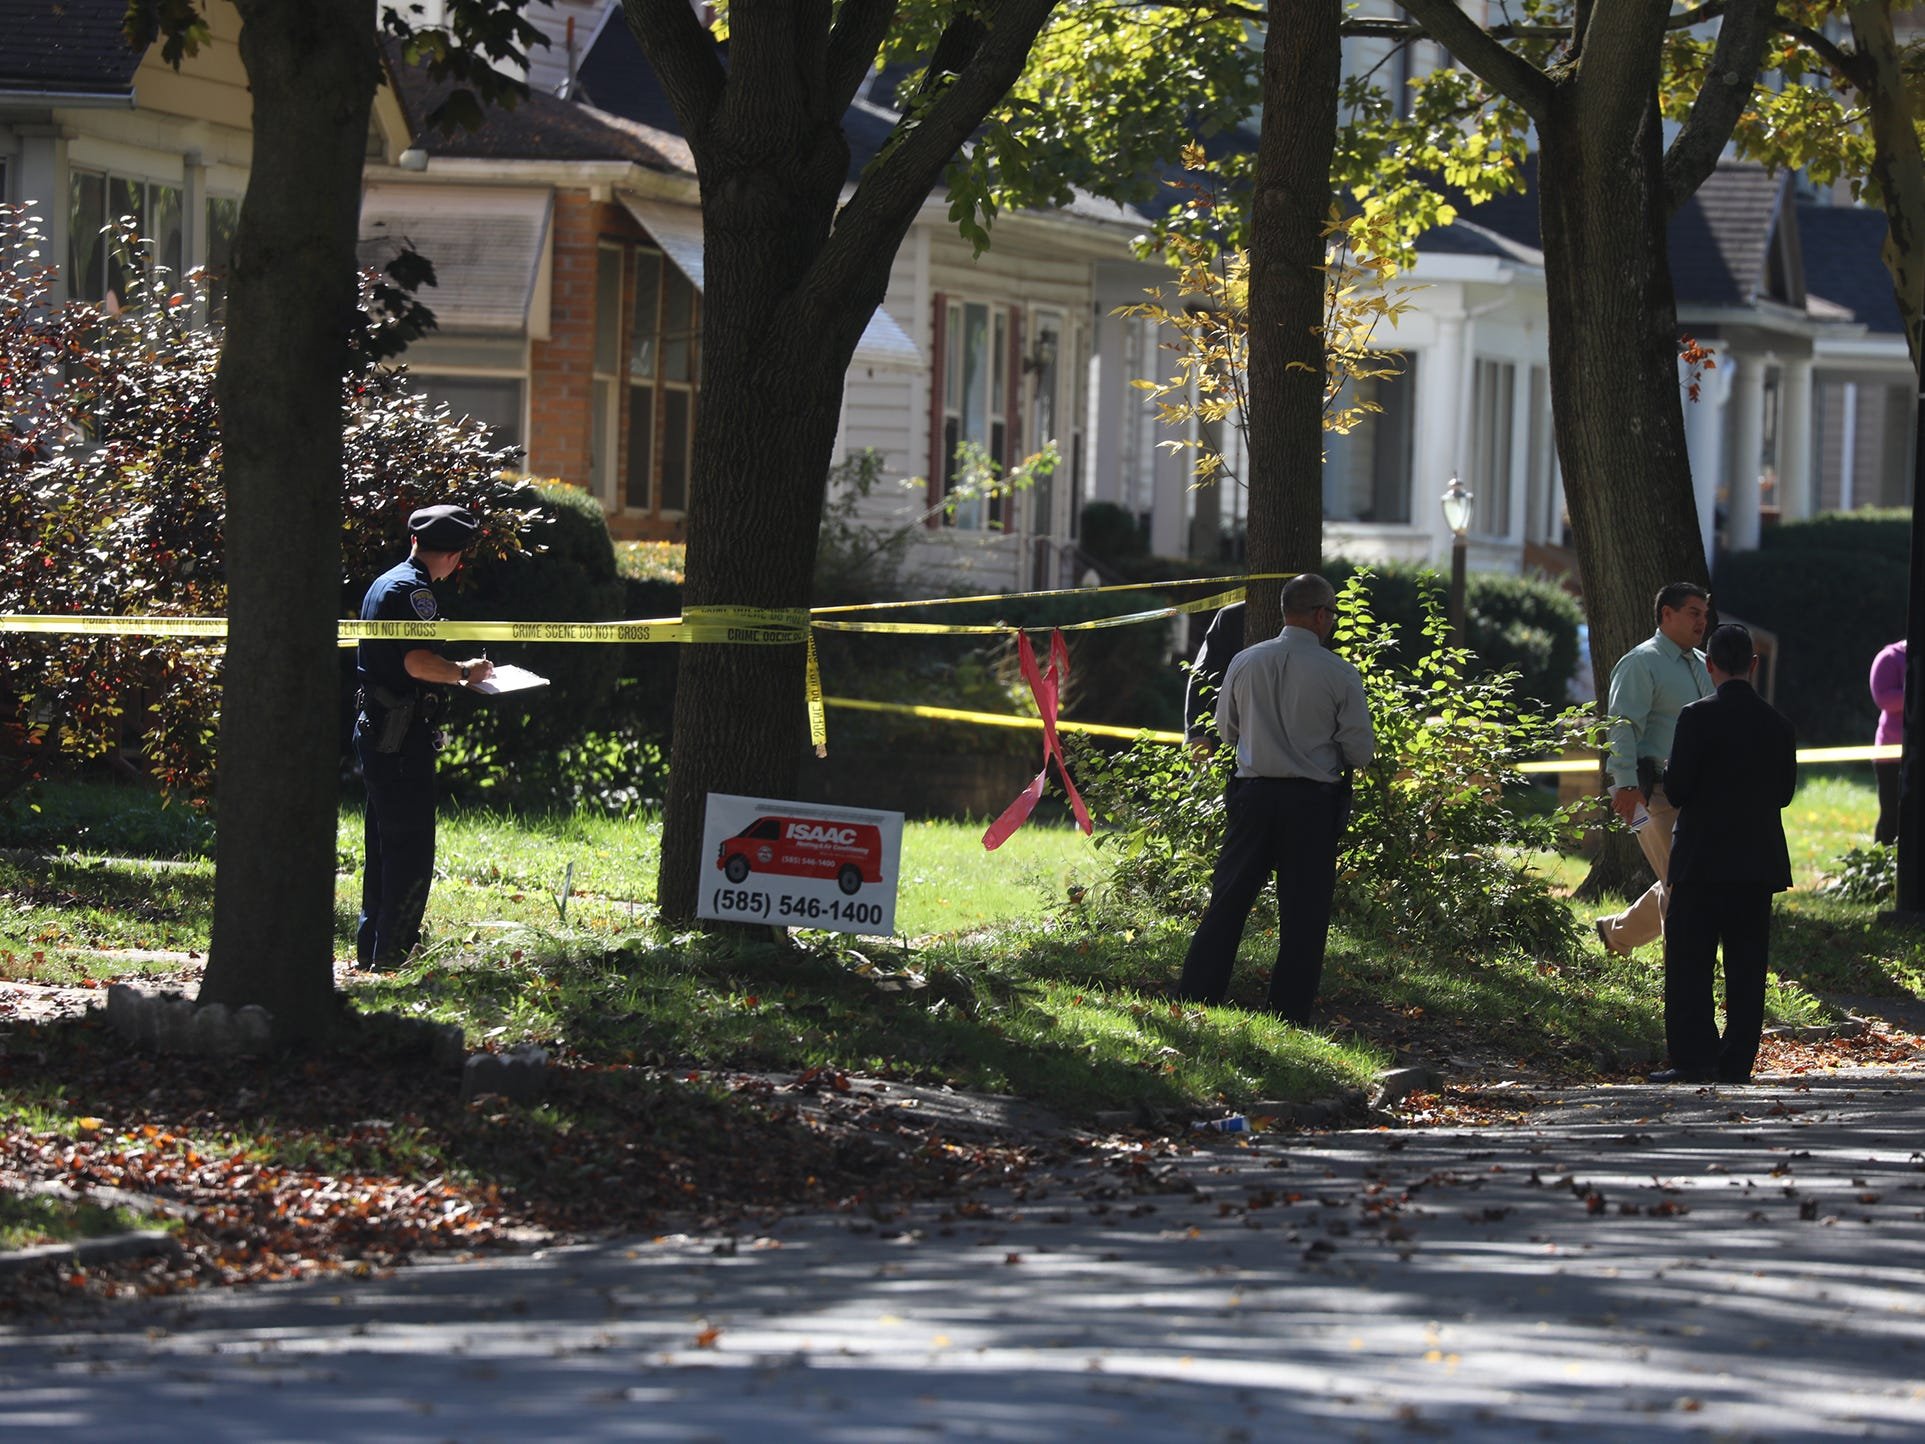 Police investigate the shooting on Post Ave. that left one dead and one injured.